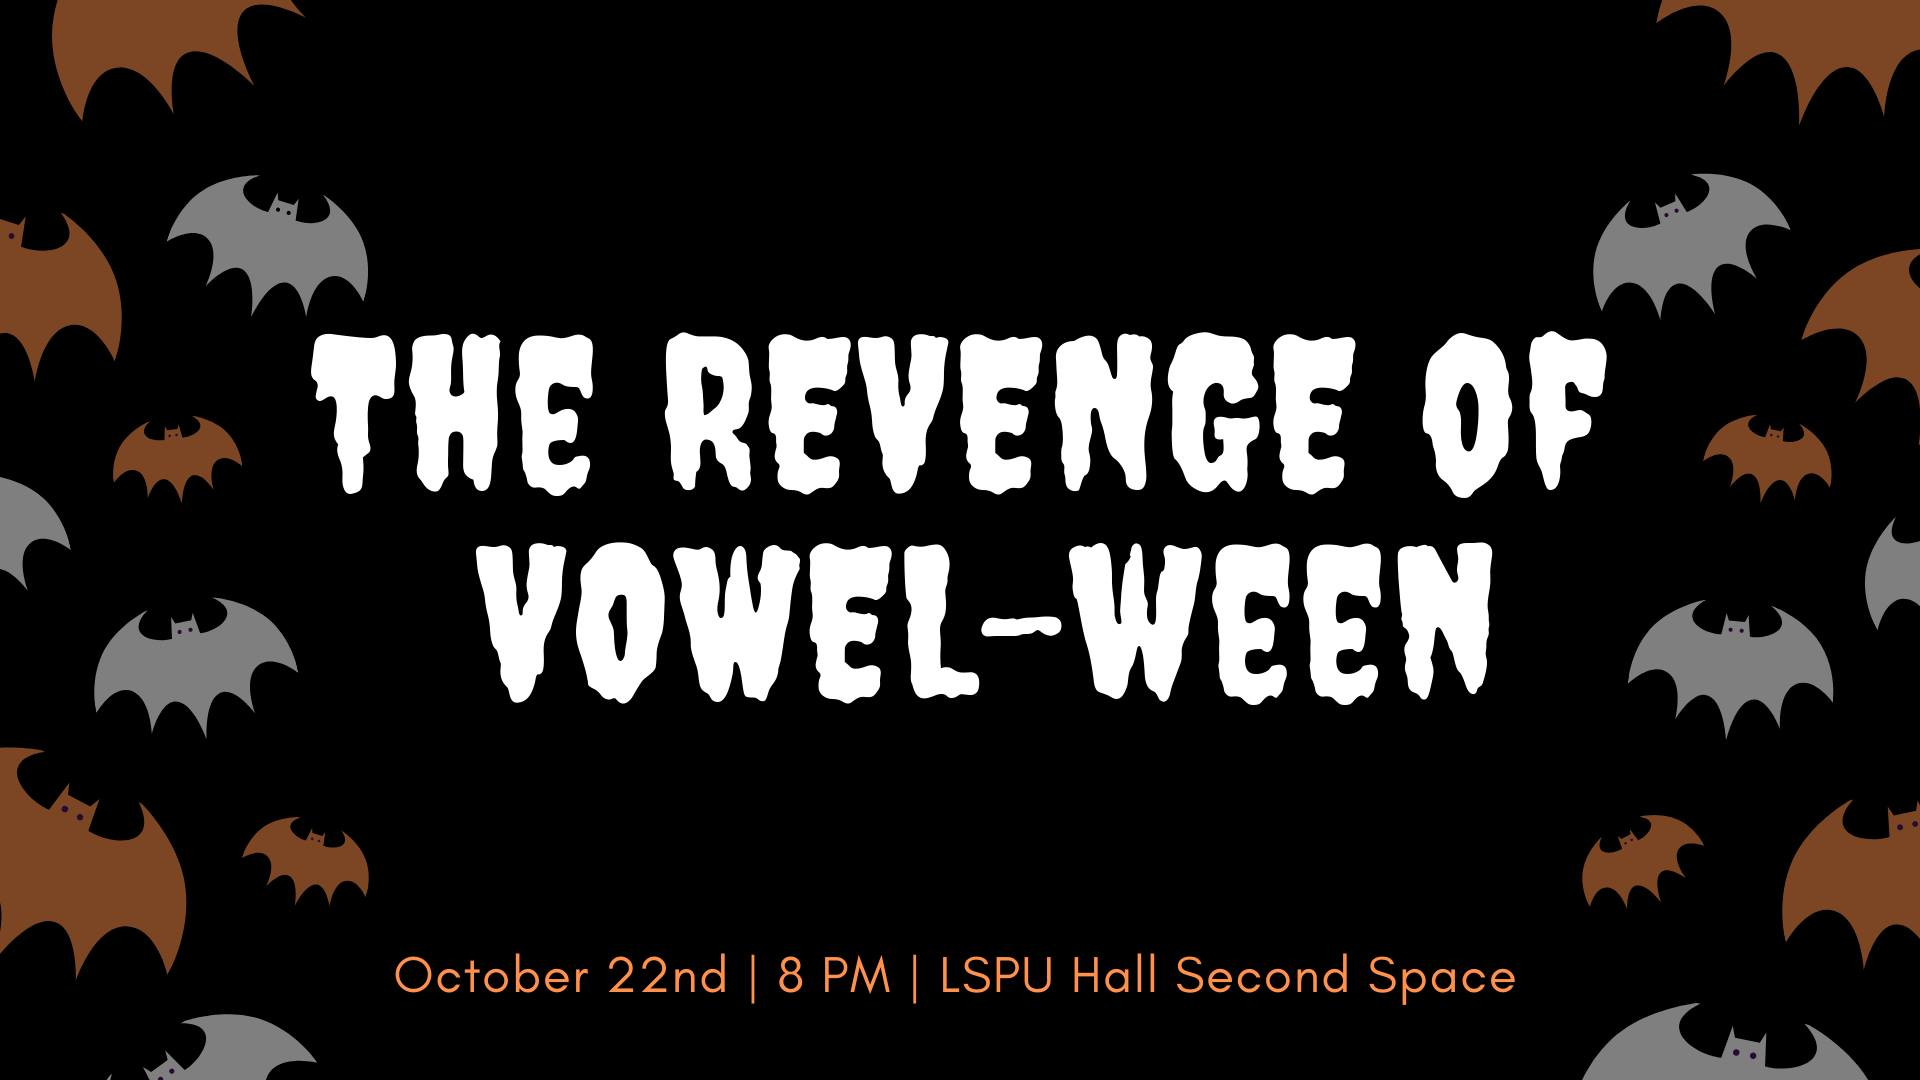 Poster for The Revenge of Vowel-ween. Spooky text with bats.